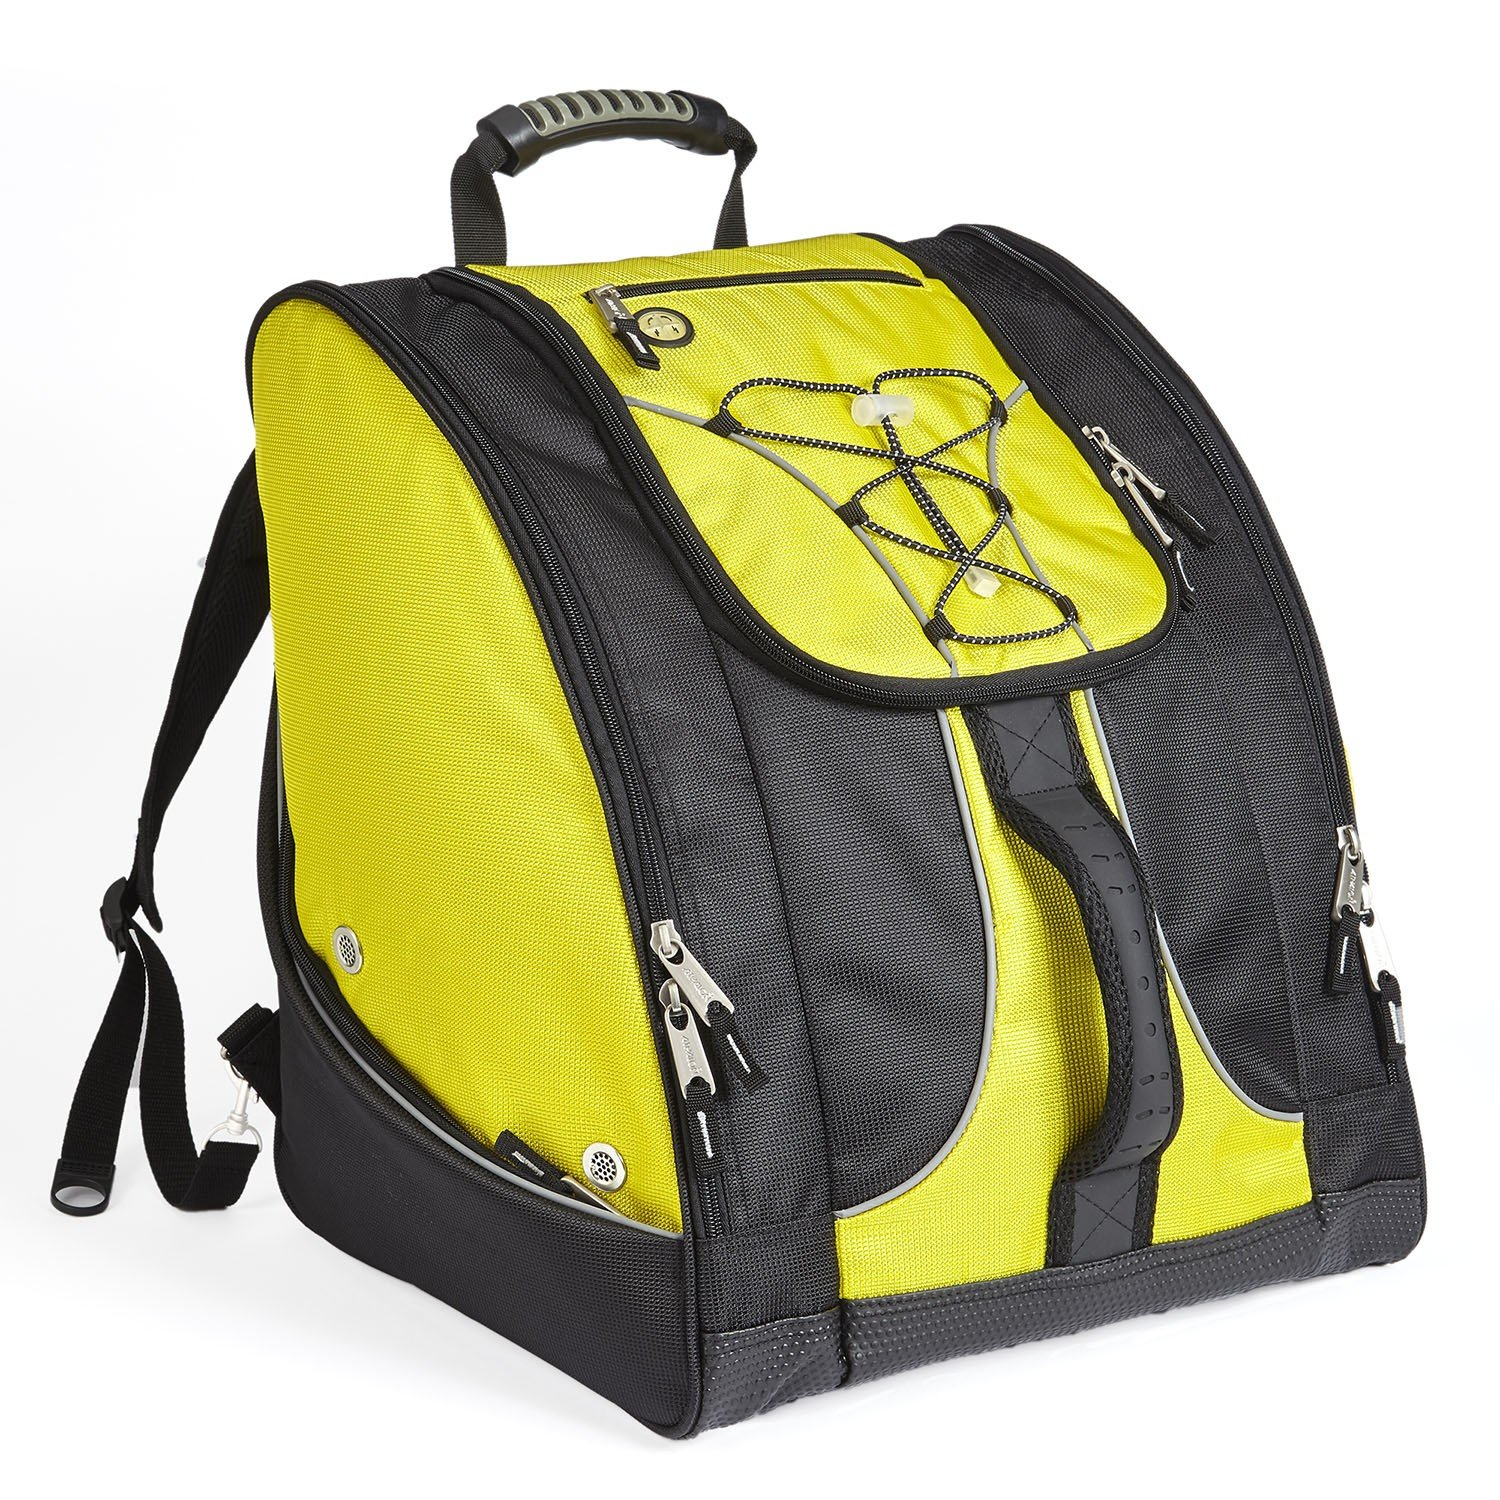 Athalon Everything Boot Bag-Yellow/Black by Athalon